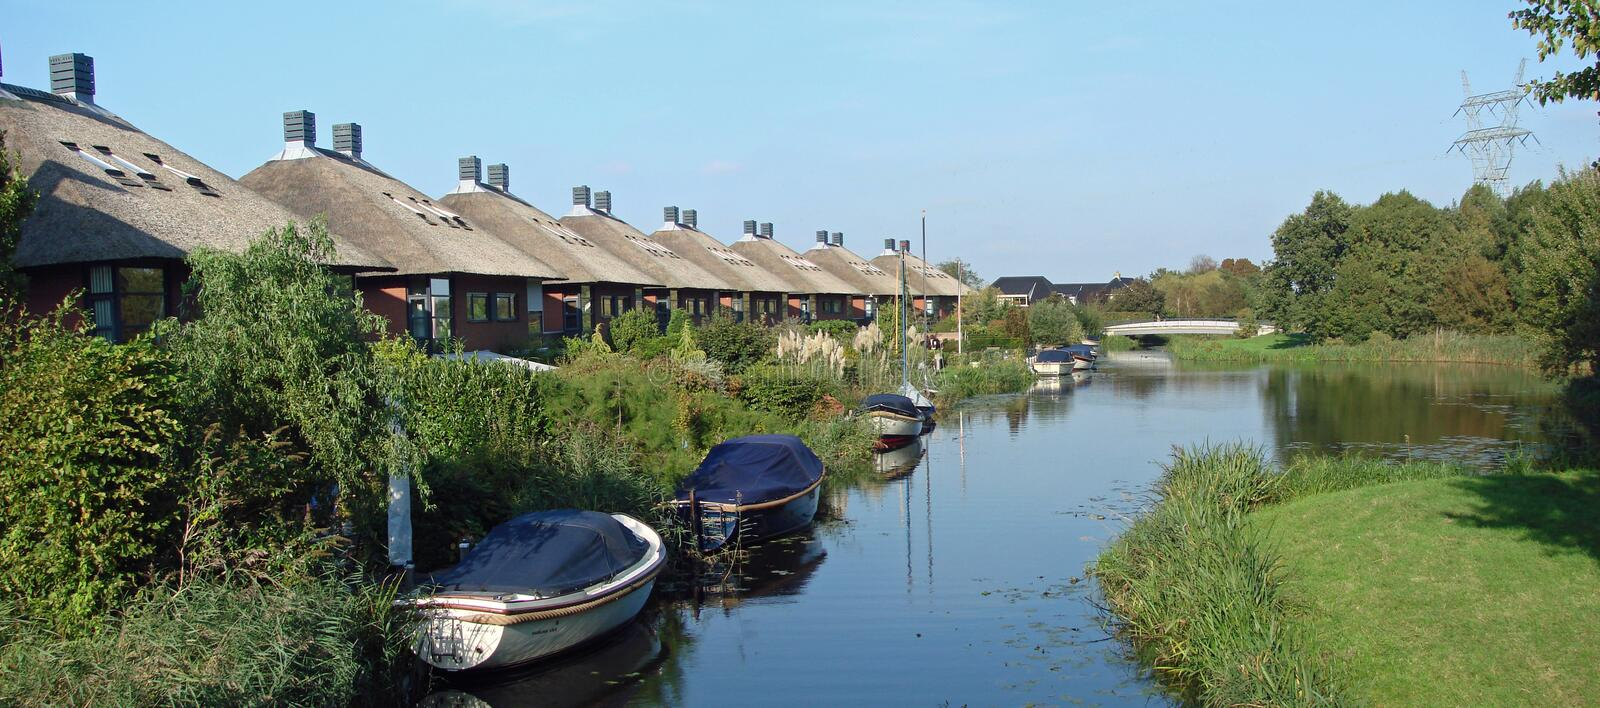 Download Modern Dutch Houses In Holland On The Waterside Stock Image - Image: 13617537